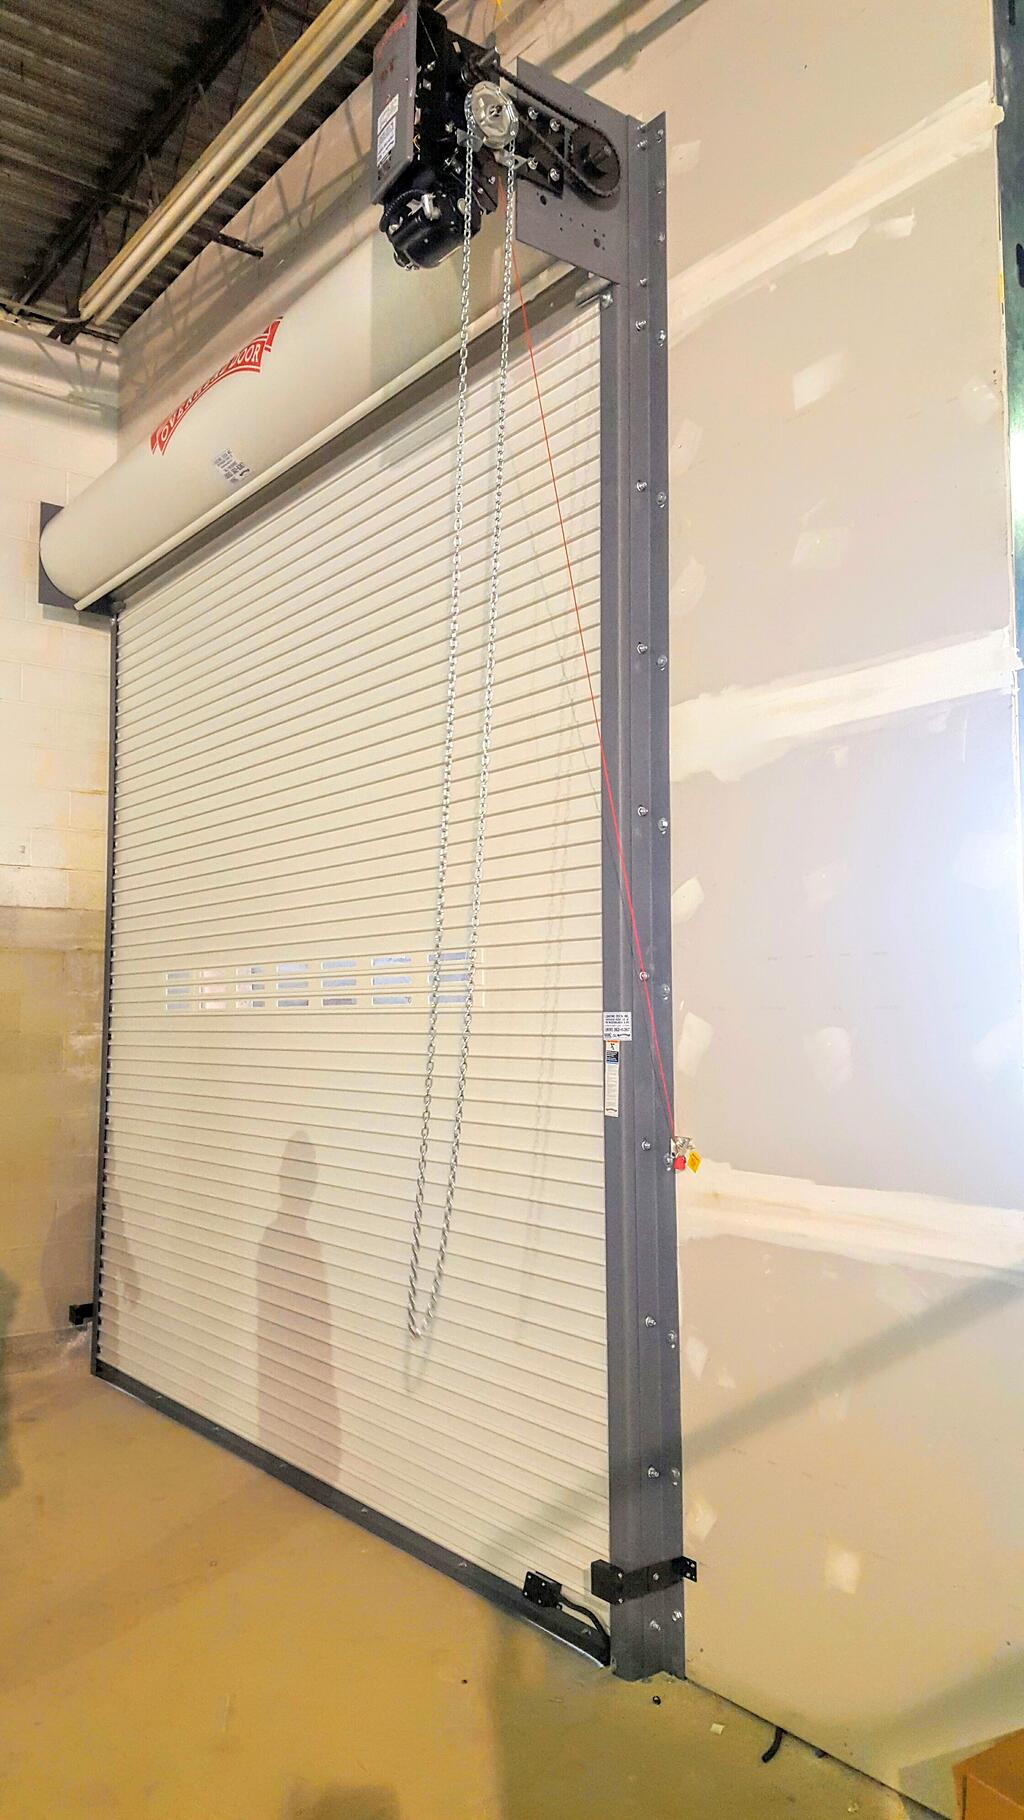 1820 #957236 Electric Motorized Automated Roller Gate System In New Jersey & New  save image Steel Overhead Doors 38071024